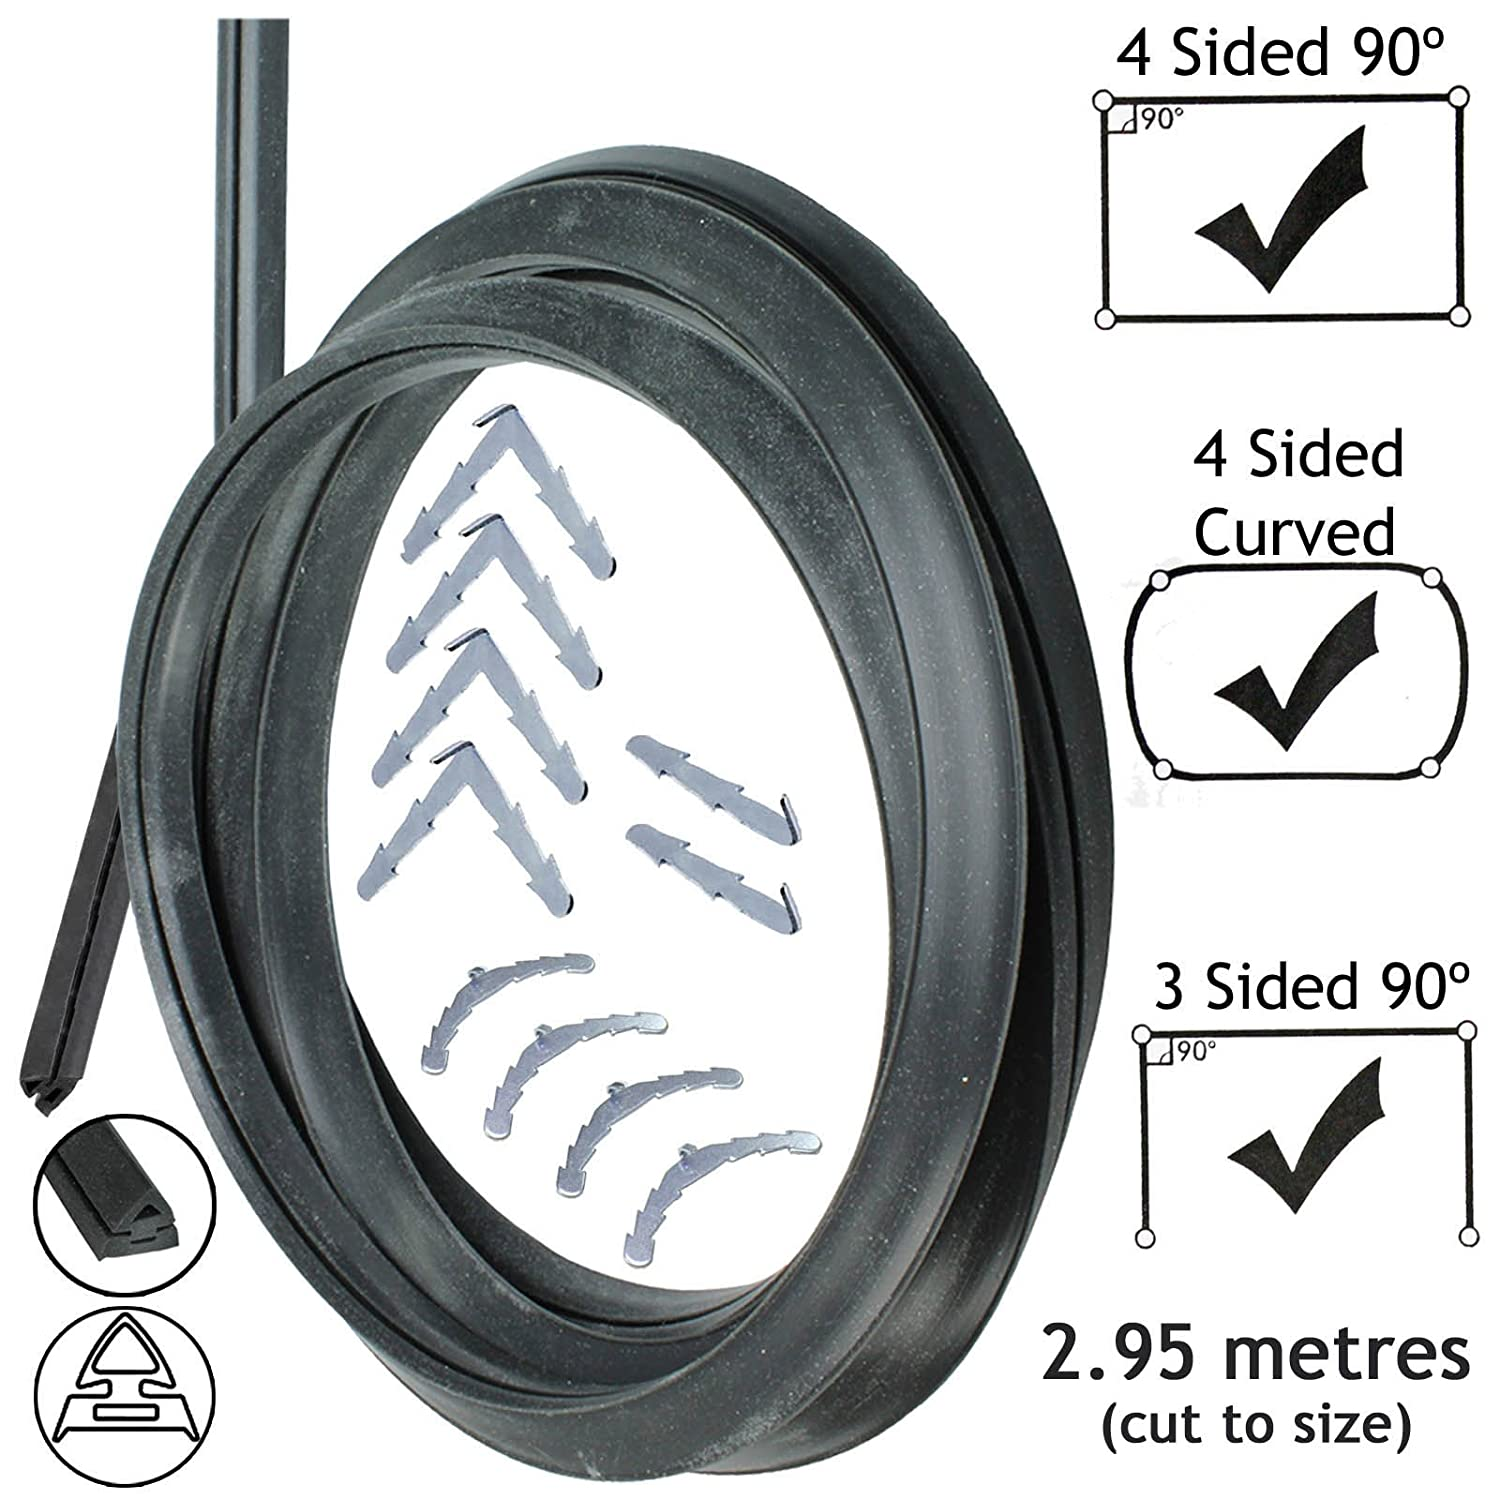 Spares2go 3m Cut to Size Door Seal For Haier 3 or 4 Sided Oven Cooker Rounded or 90º Clips